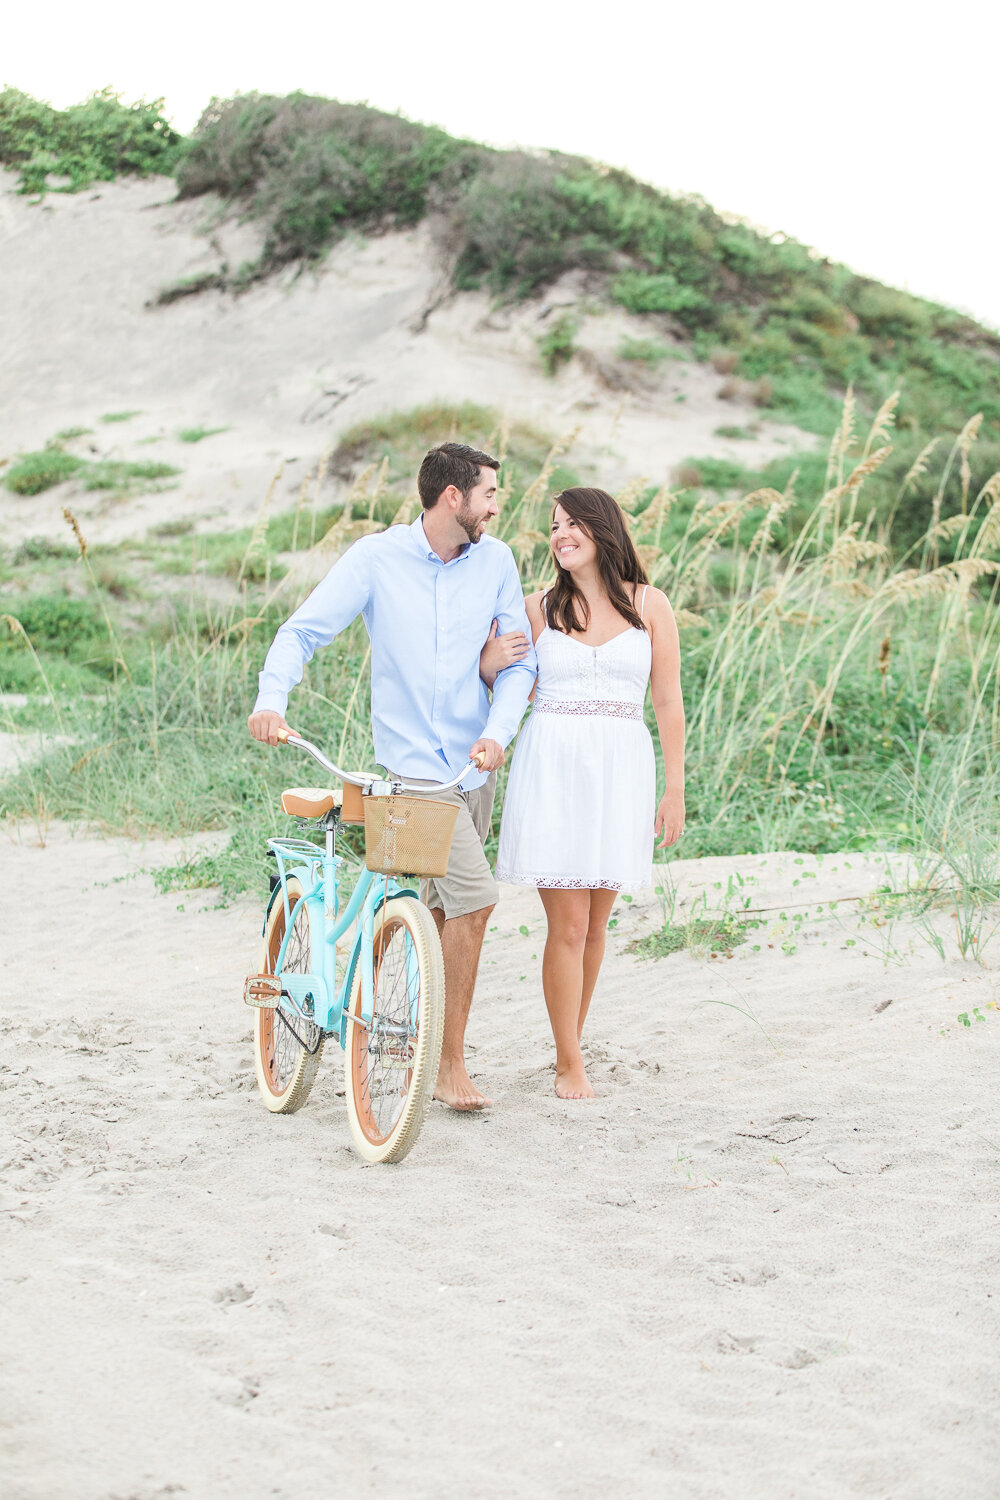 styled engagement session in Hanna park with a beach cruiser bike